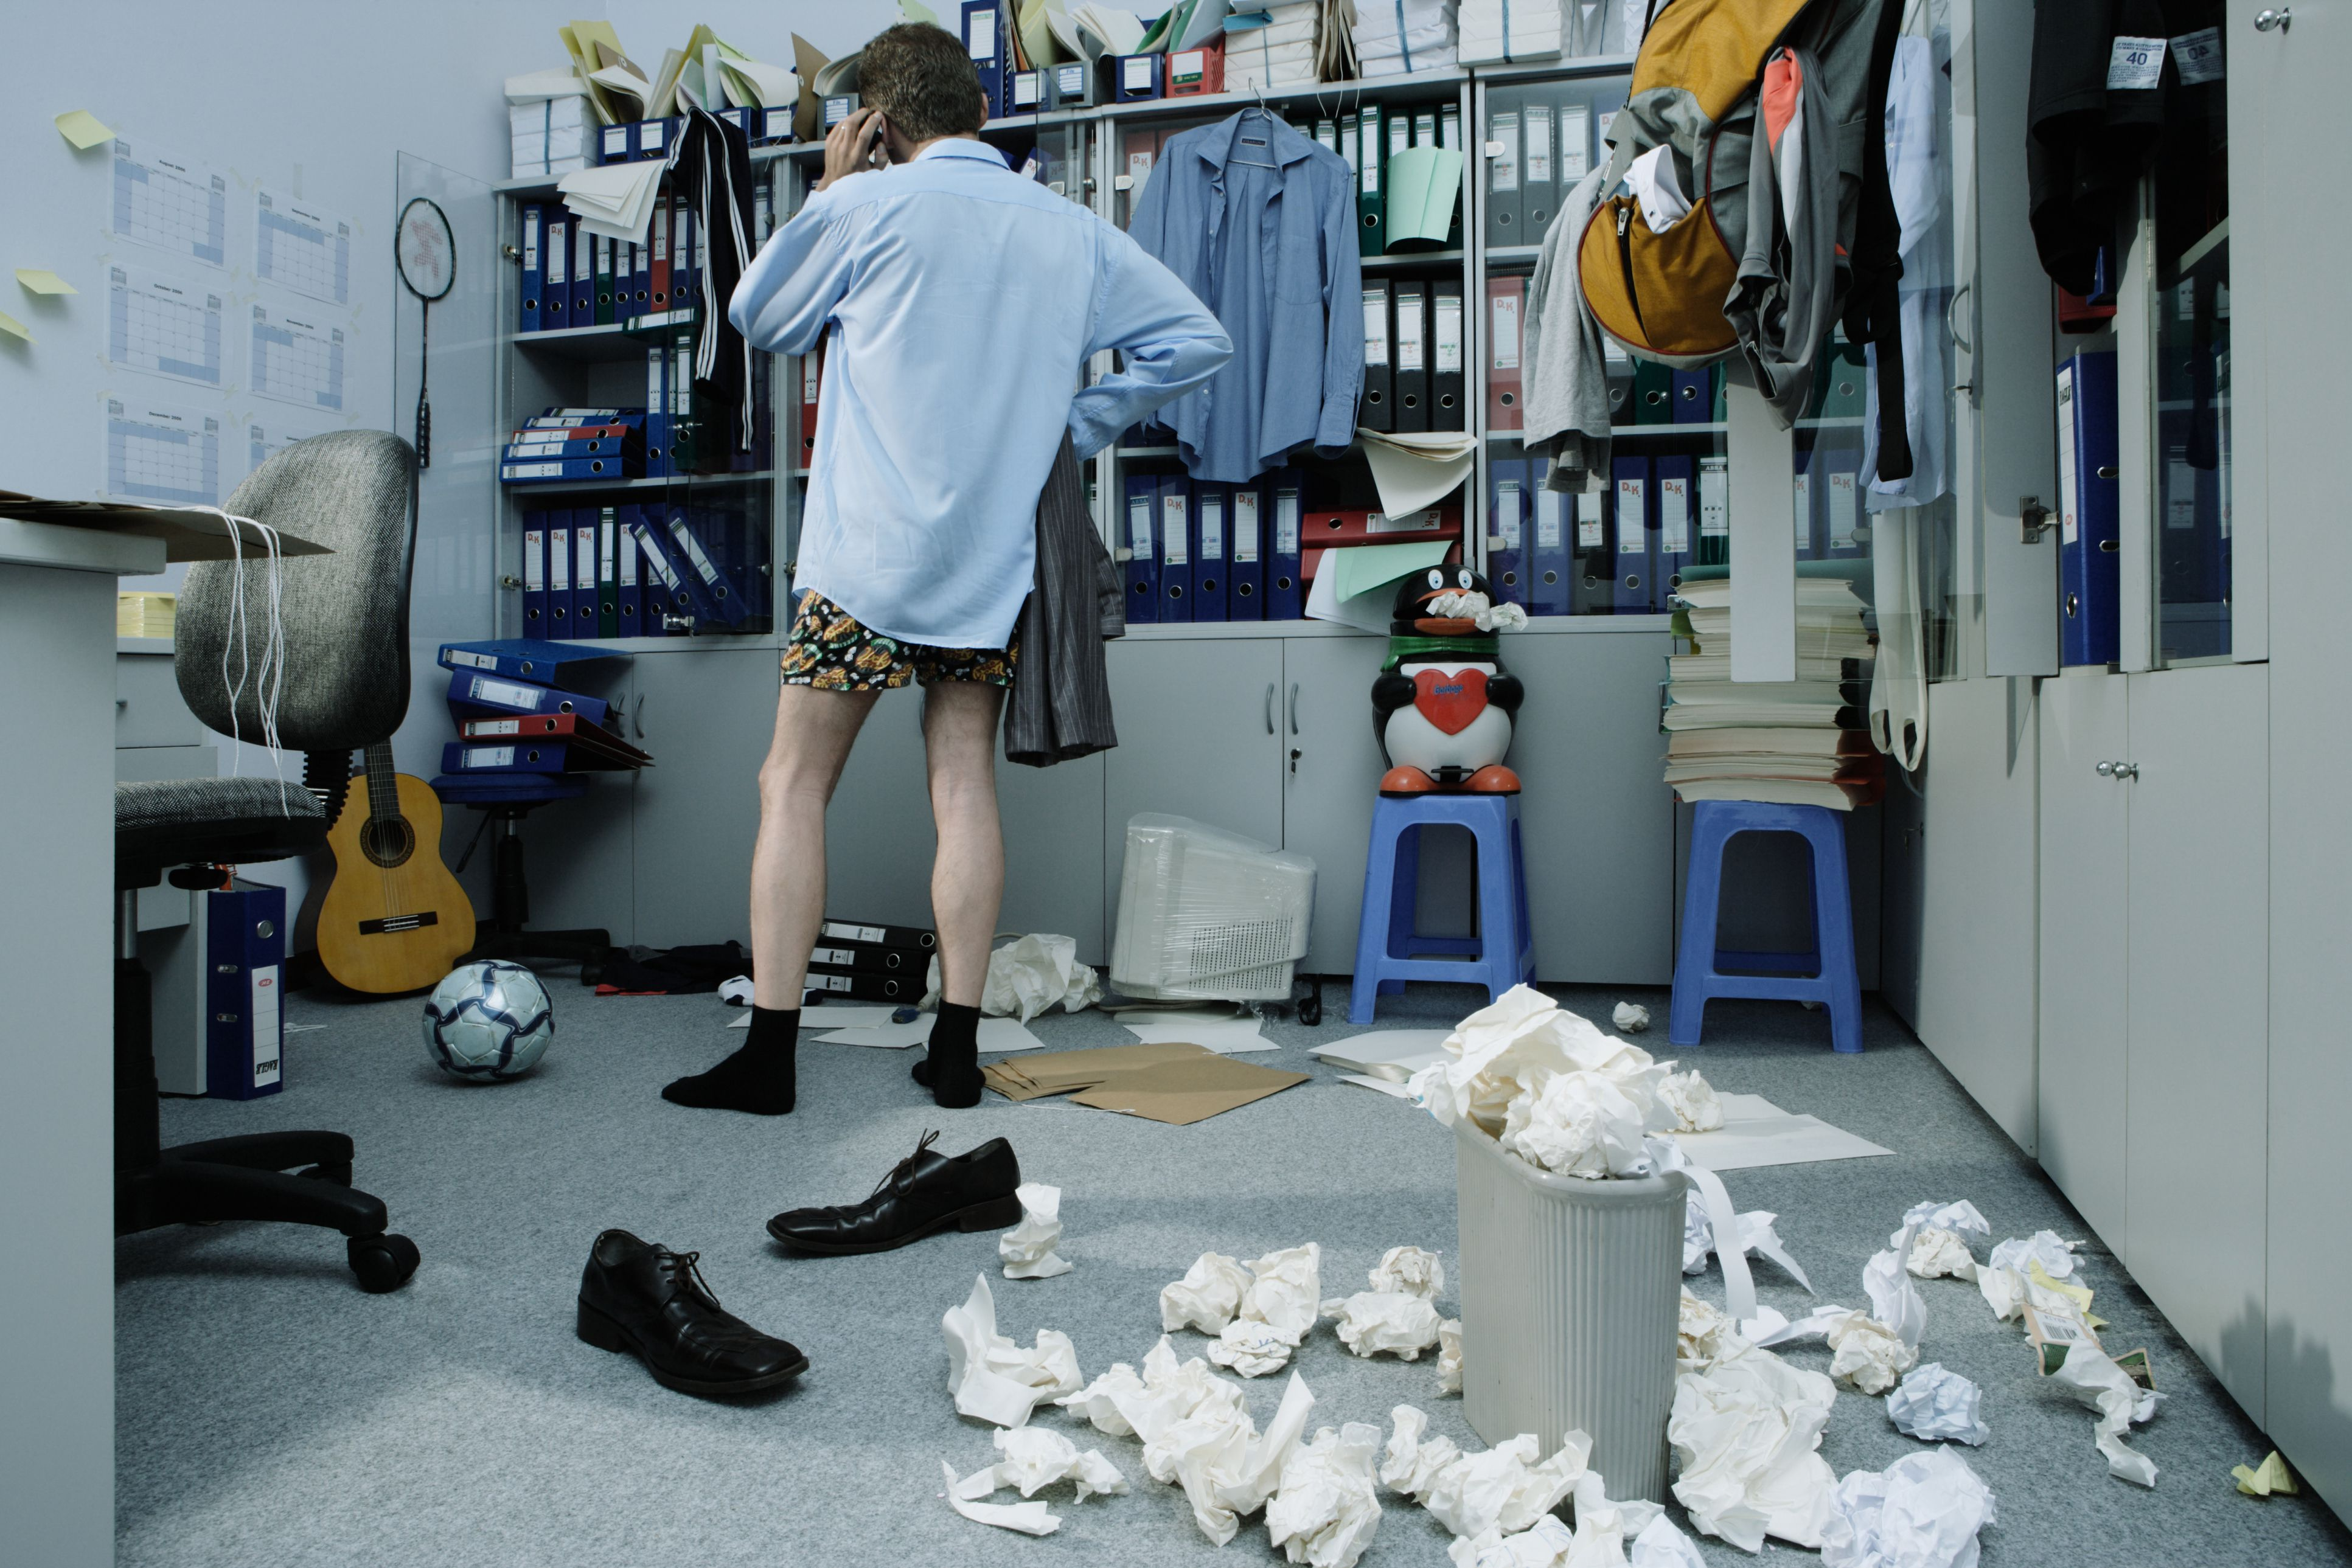 Man without pants on in messy office